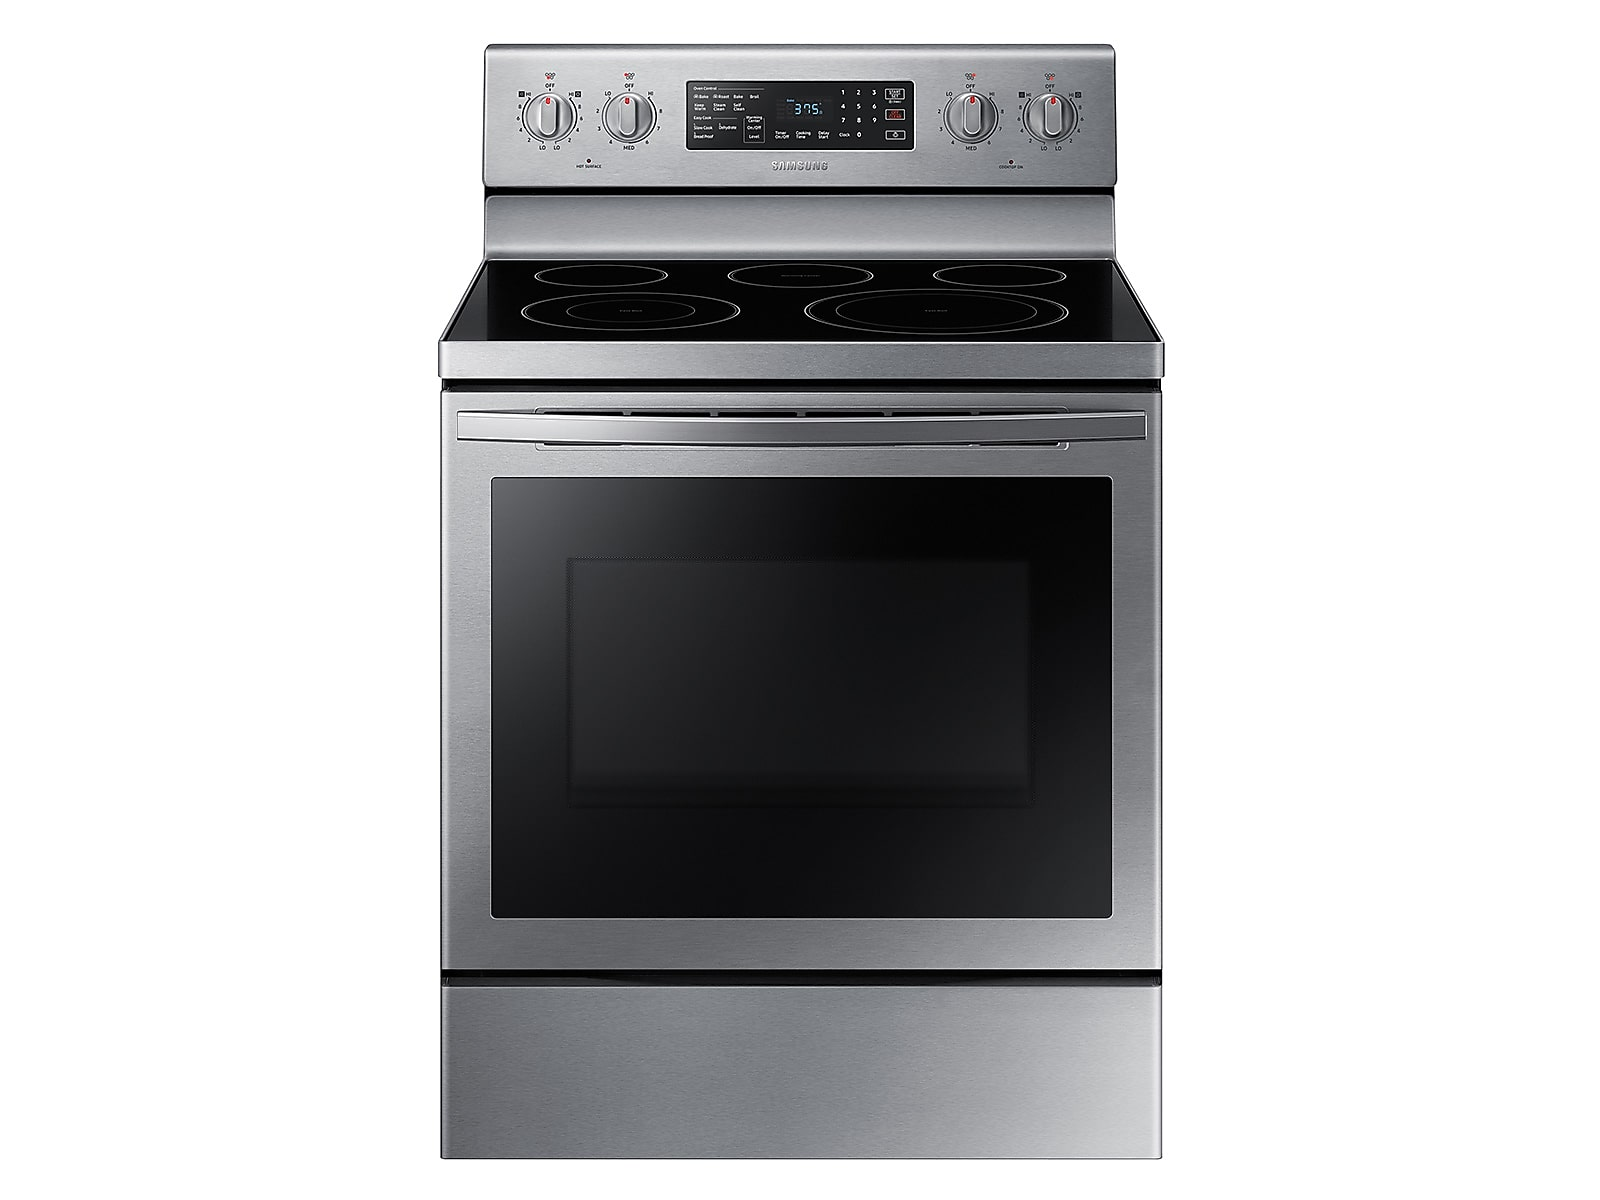 Samsung 5.9 cu. ft. Freestanding Electric Range with Air Fry and Convection in Stainless Steel(NE59T7511SS/AA)